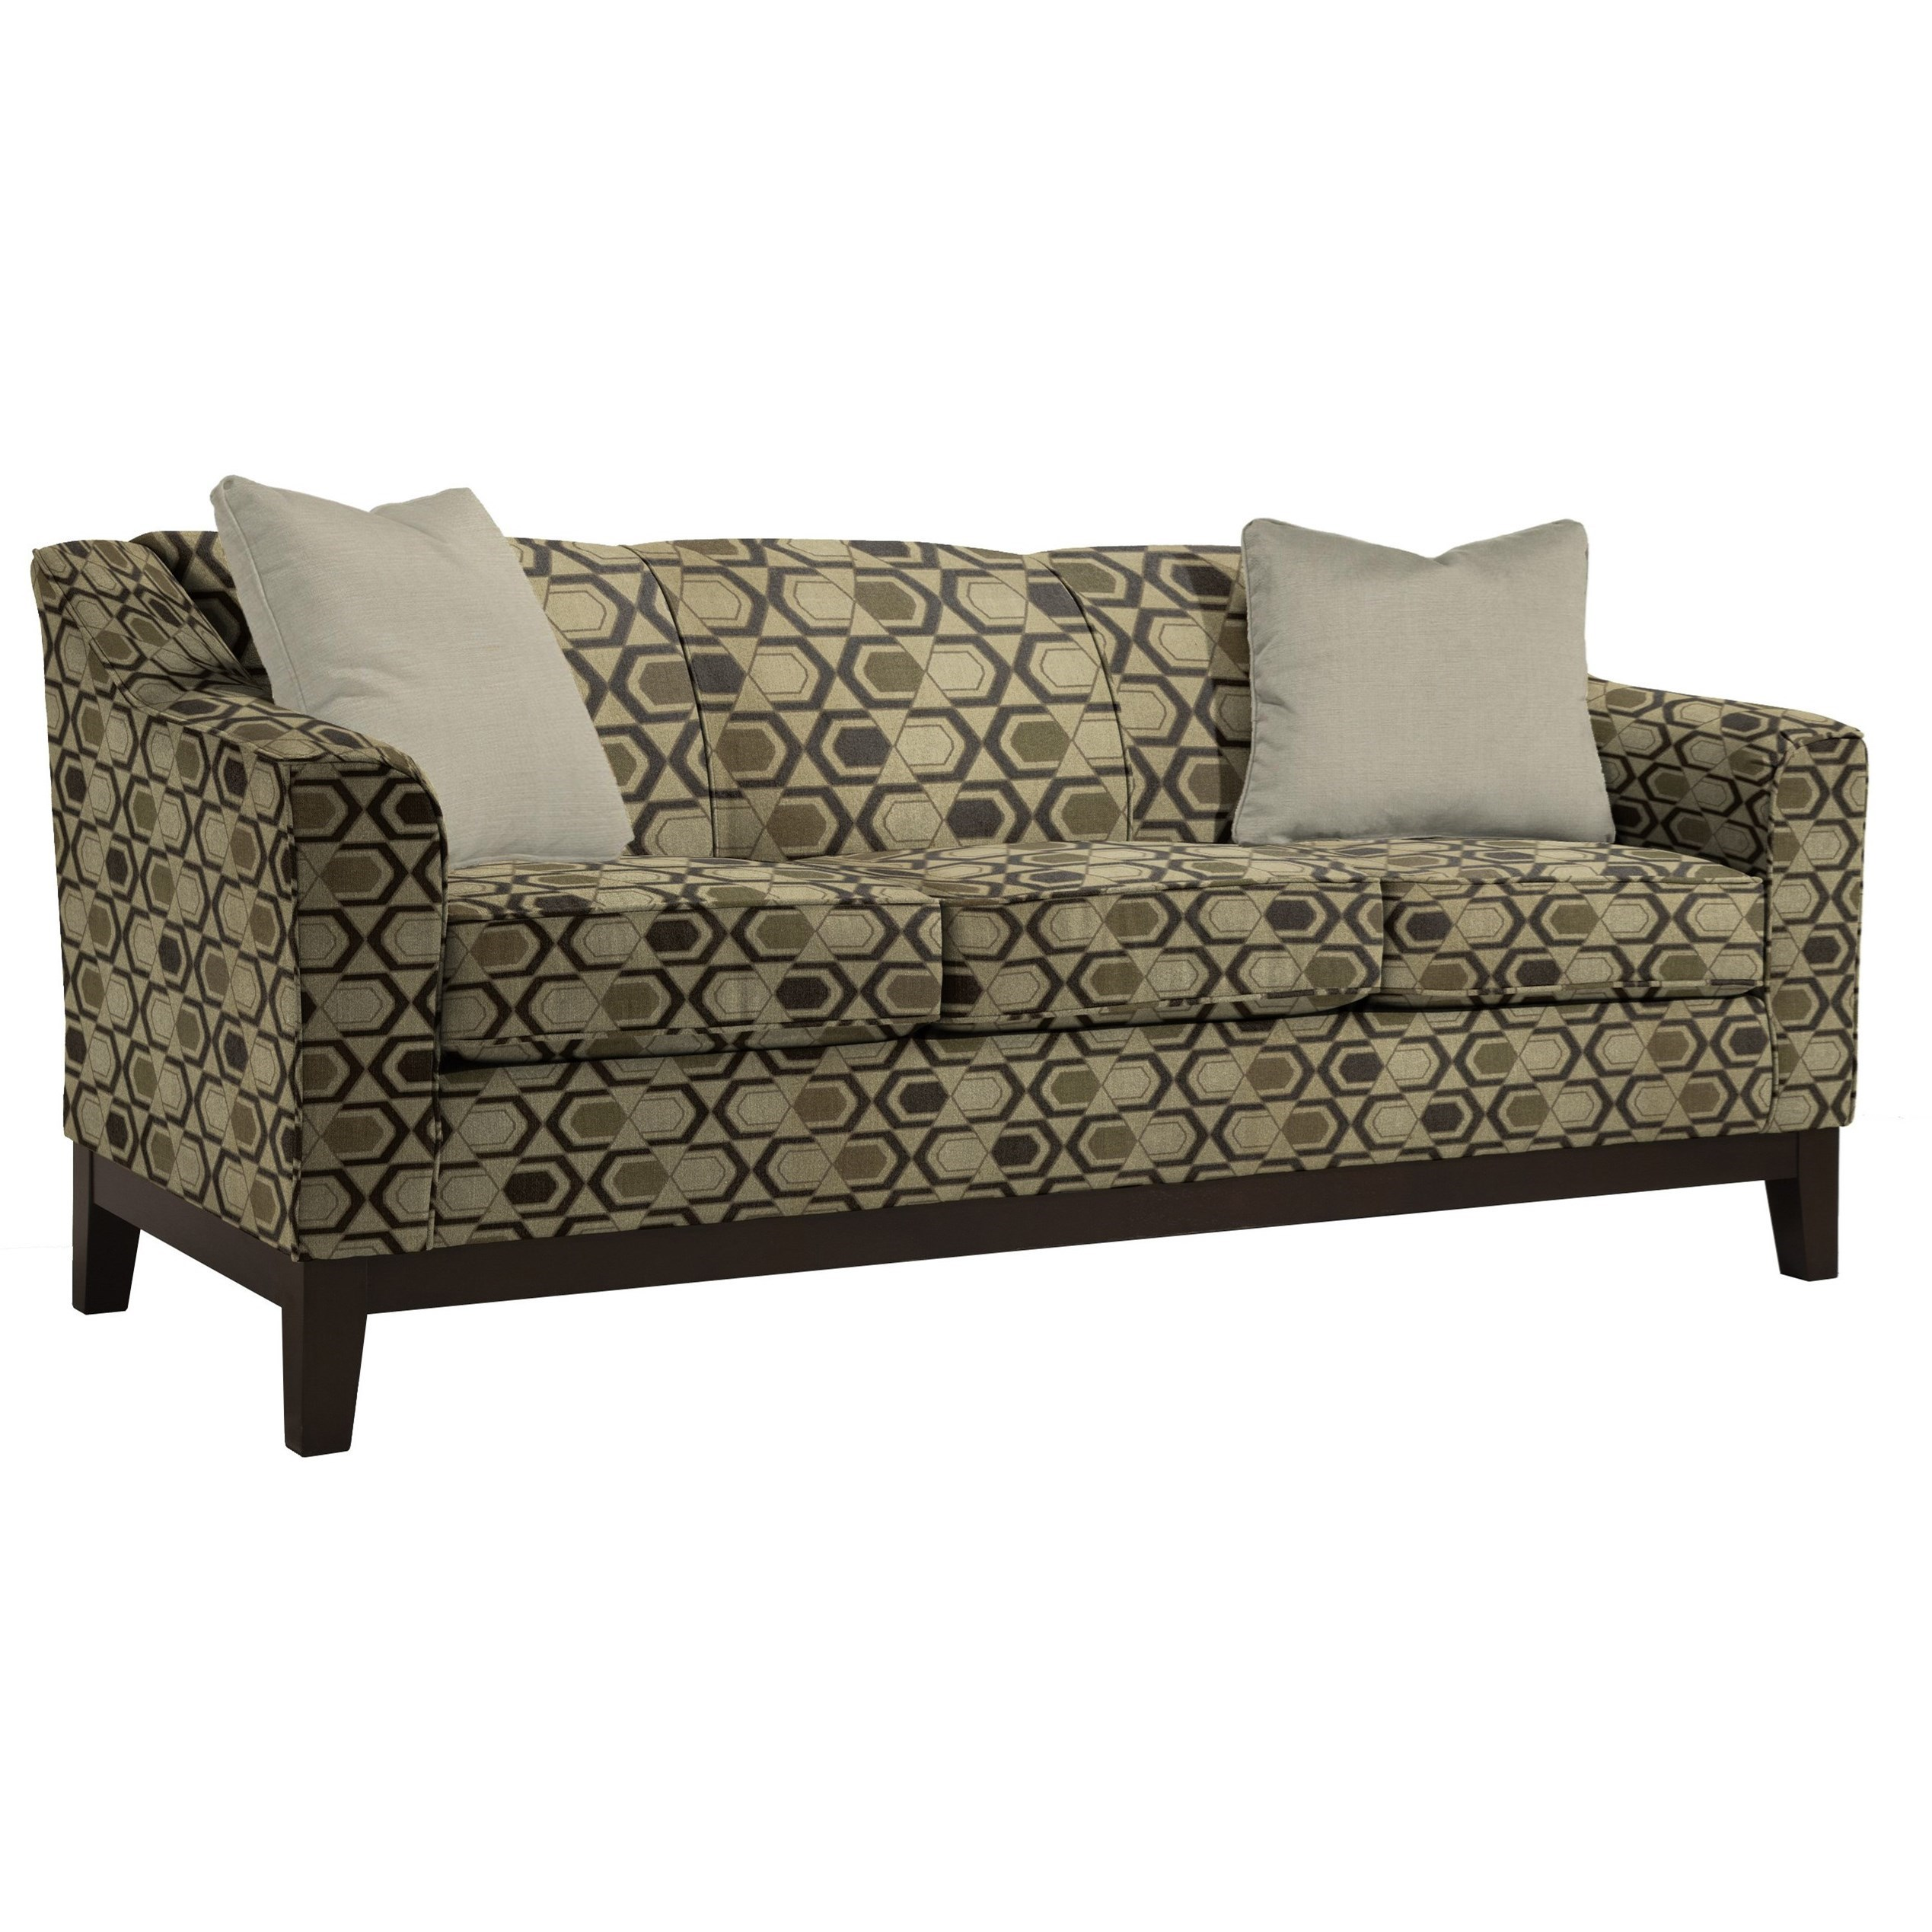 Best Home Furnishings Emeline Customizable Sofa - Item Number: 206338137-30563